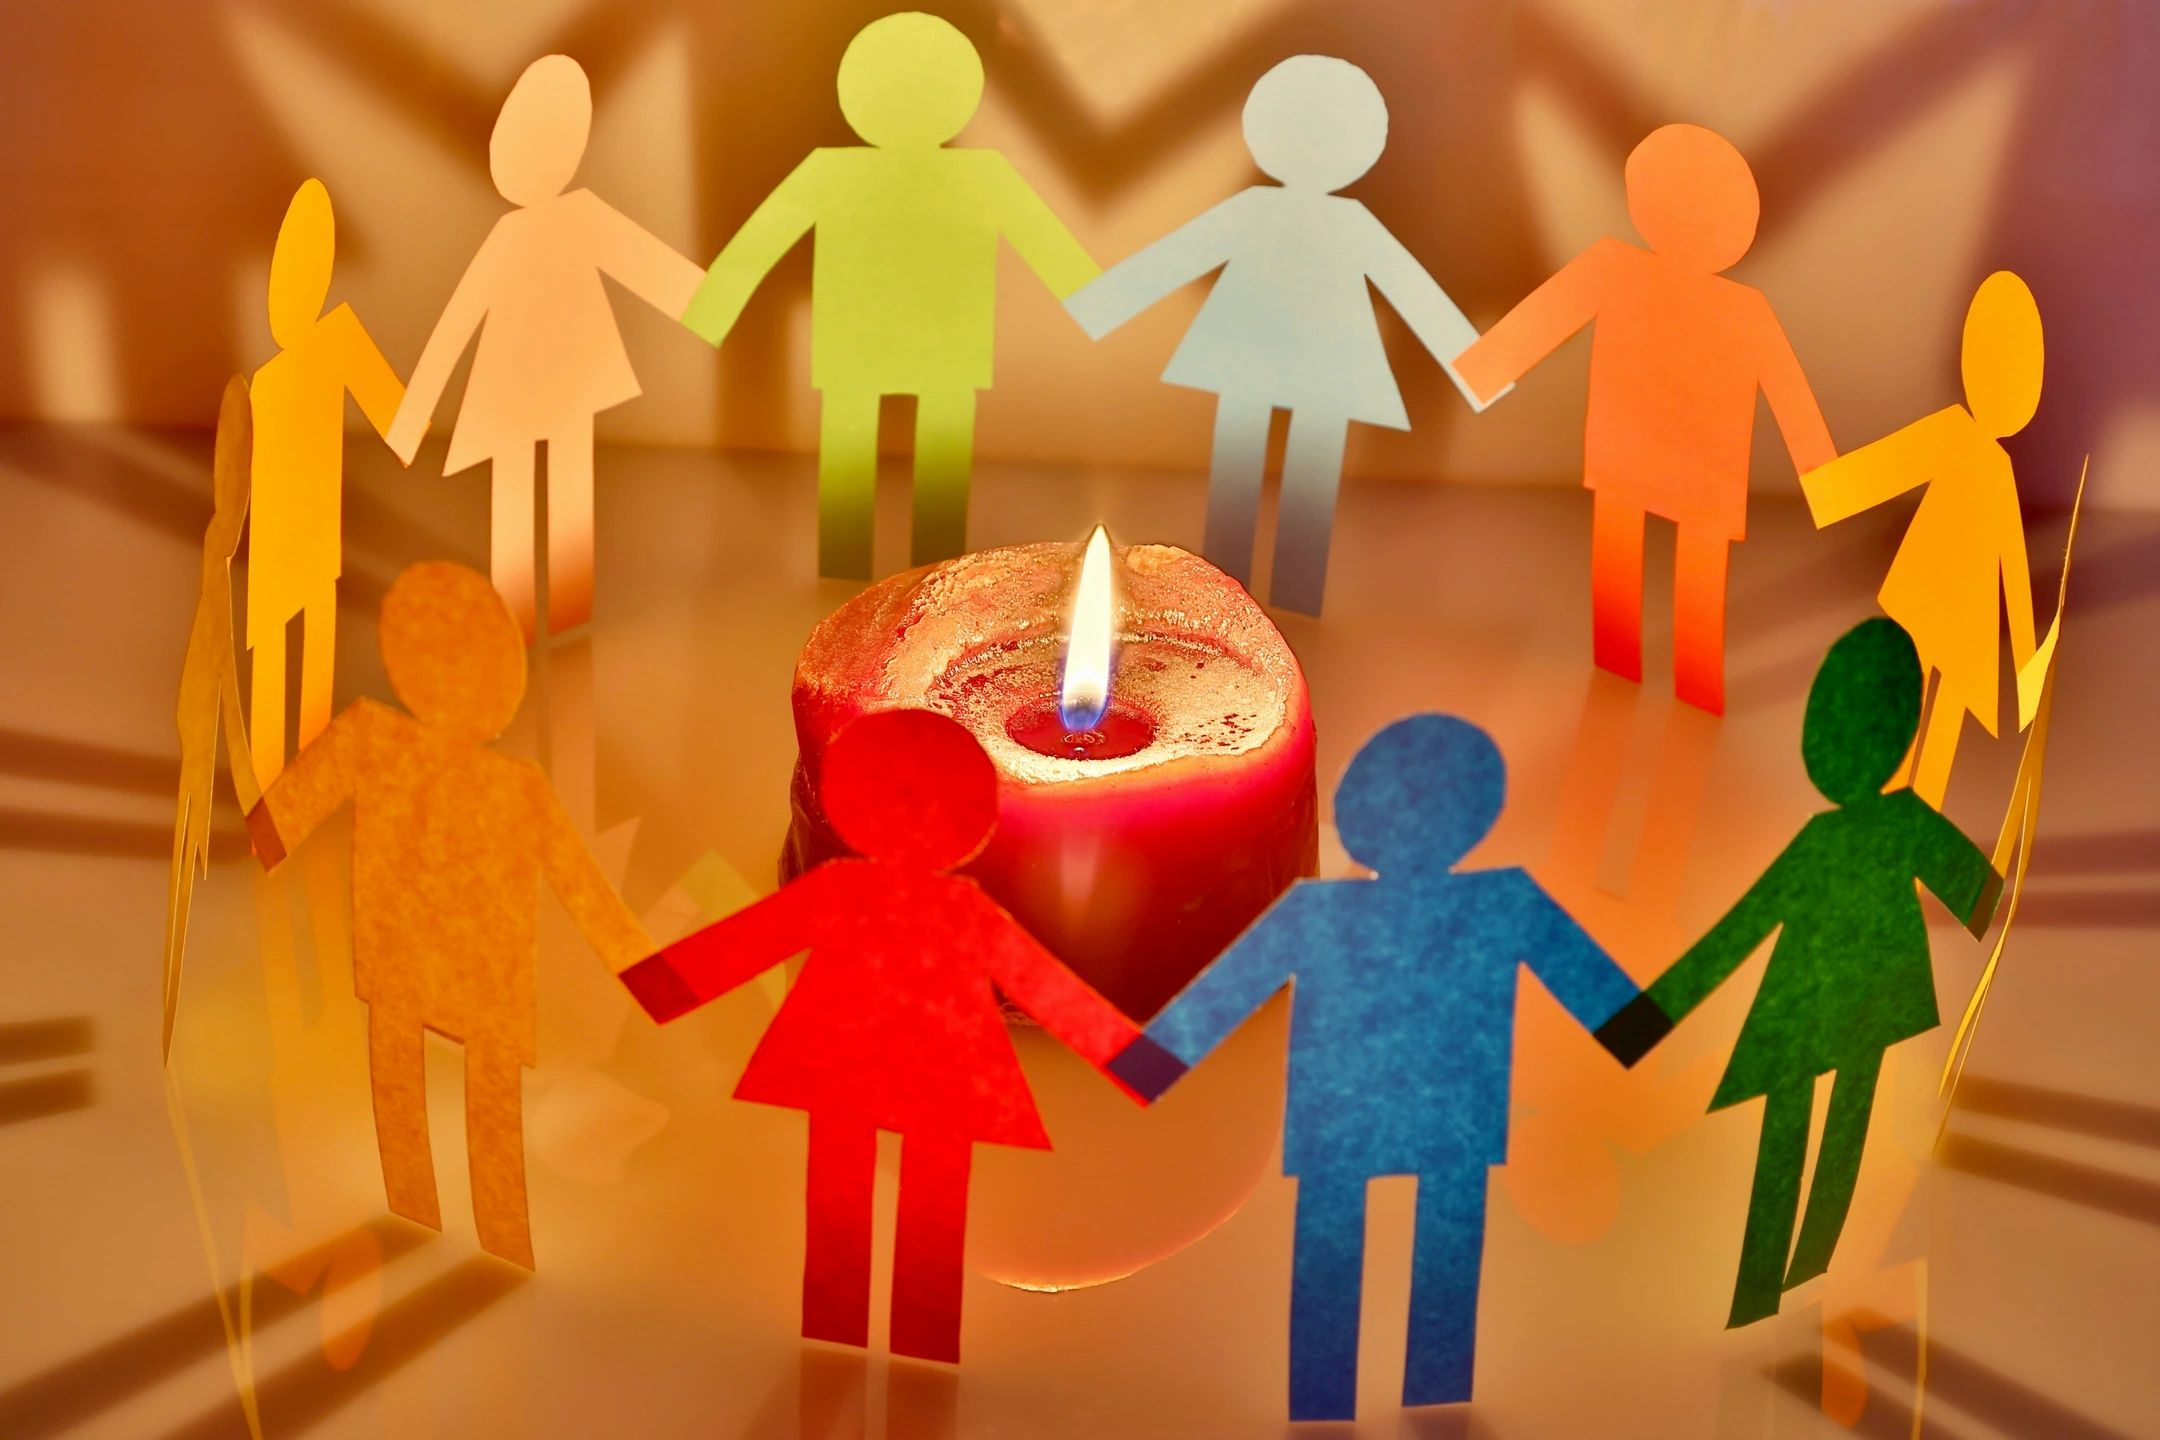 Mulitcolor Paperdolls holding hands around a lighted candle